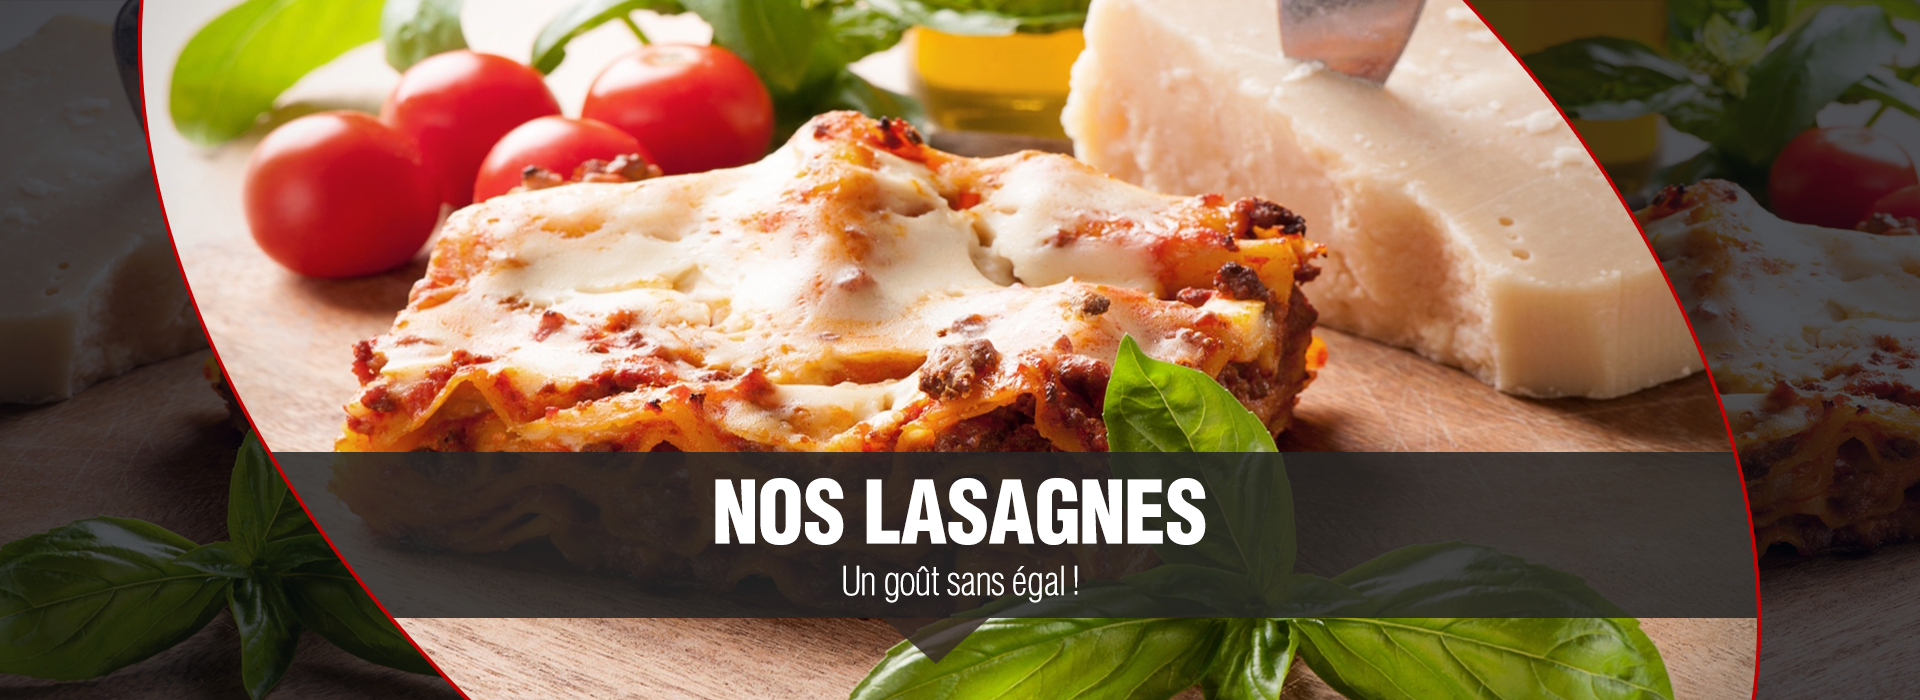 à  lasagnes le raincy 93340